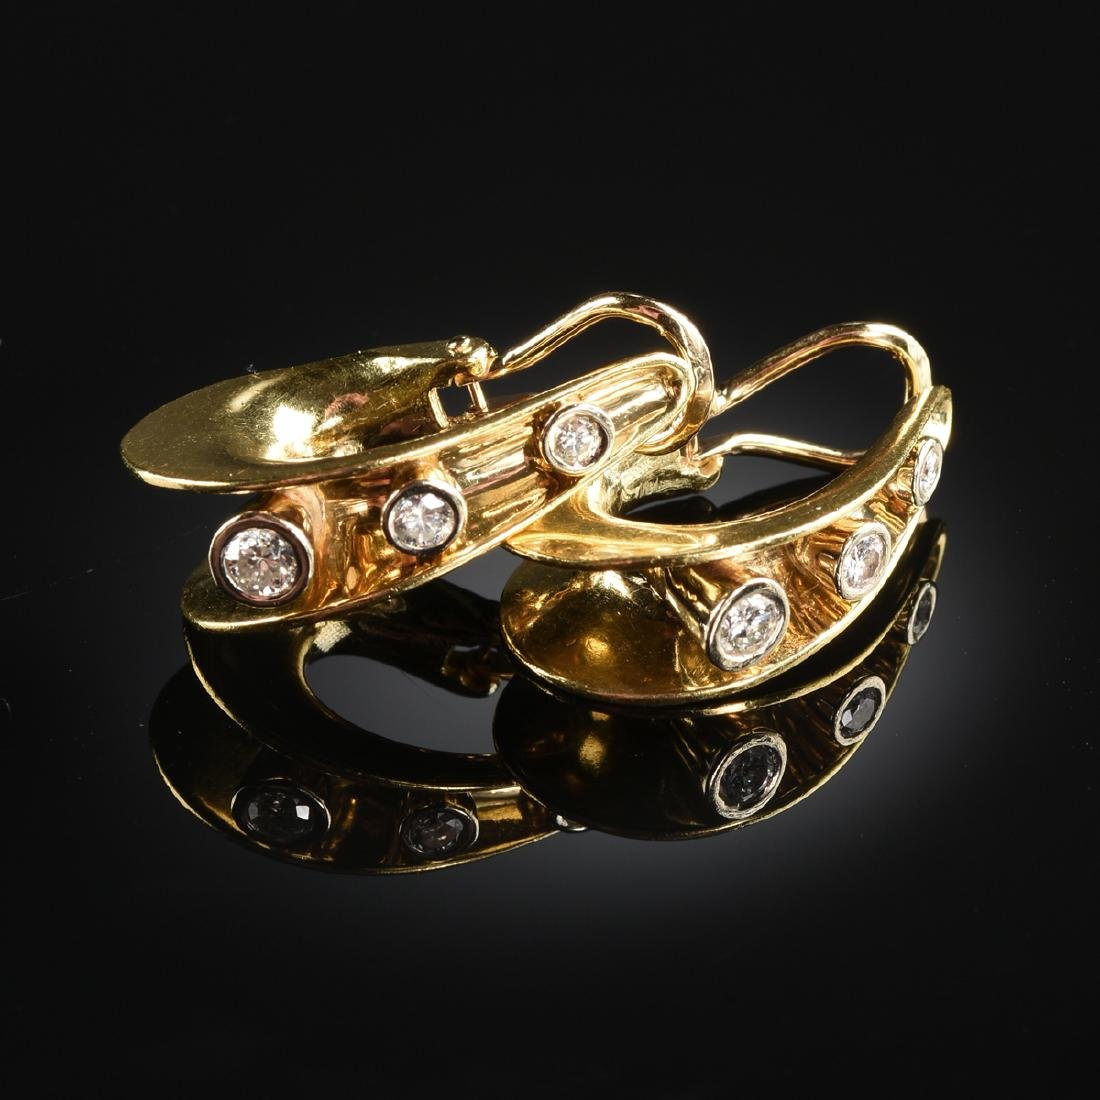 A GROUP OF FOUR PAIRS OF 18K YELLOW GOLD AND 14K YELLOW - 5